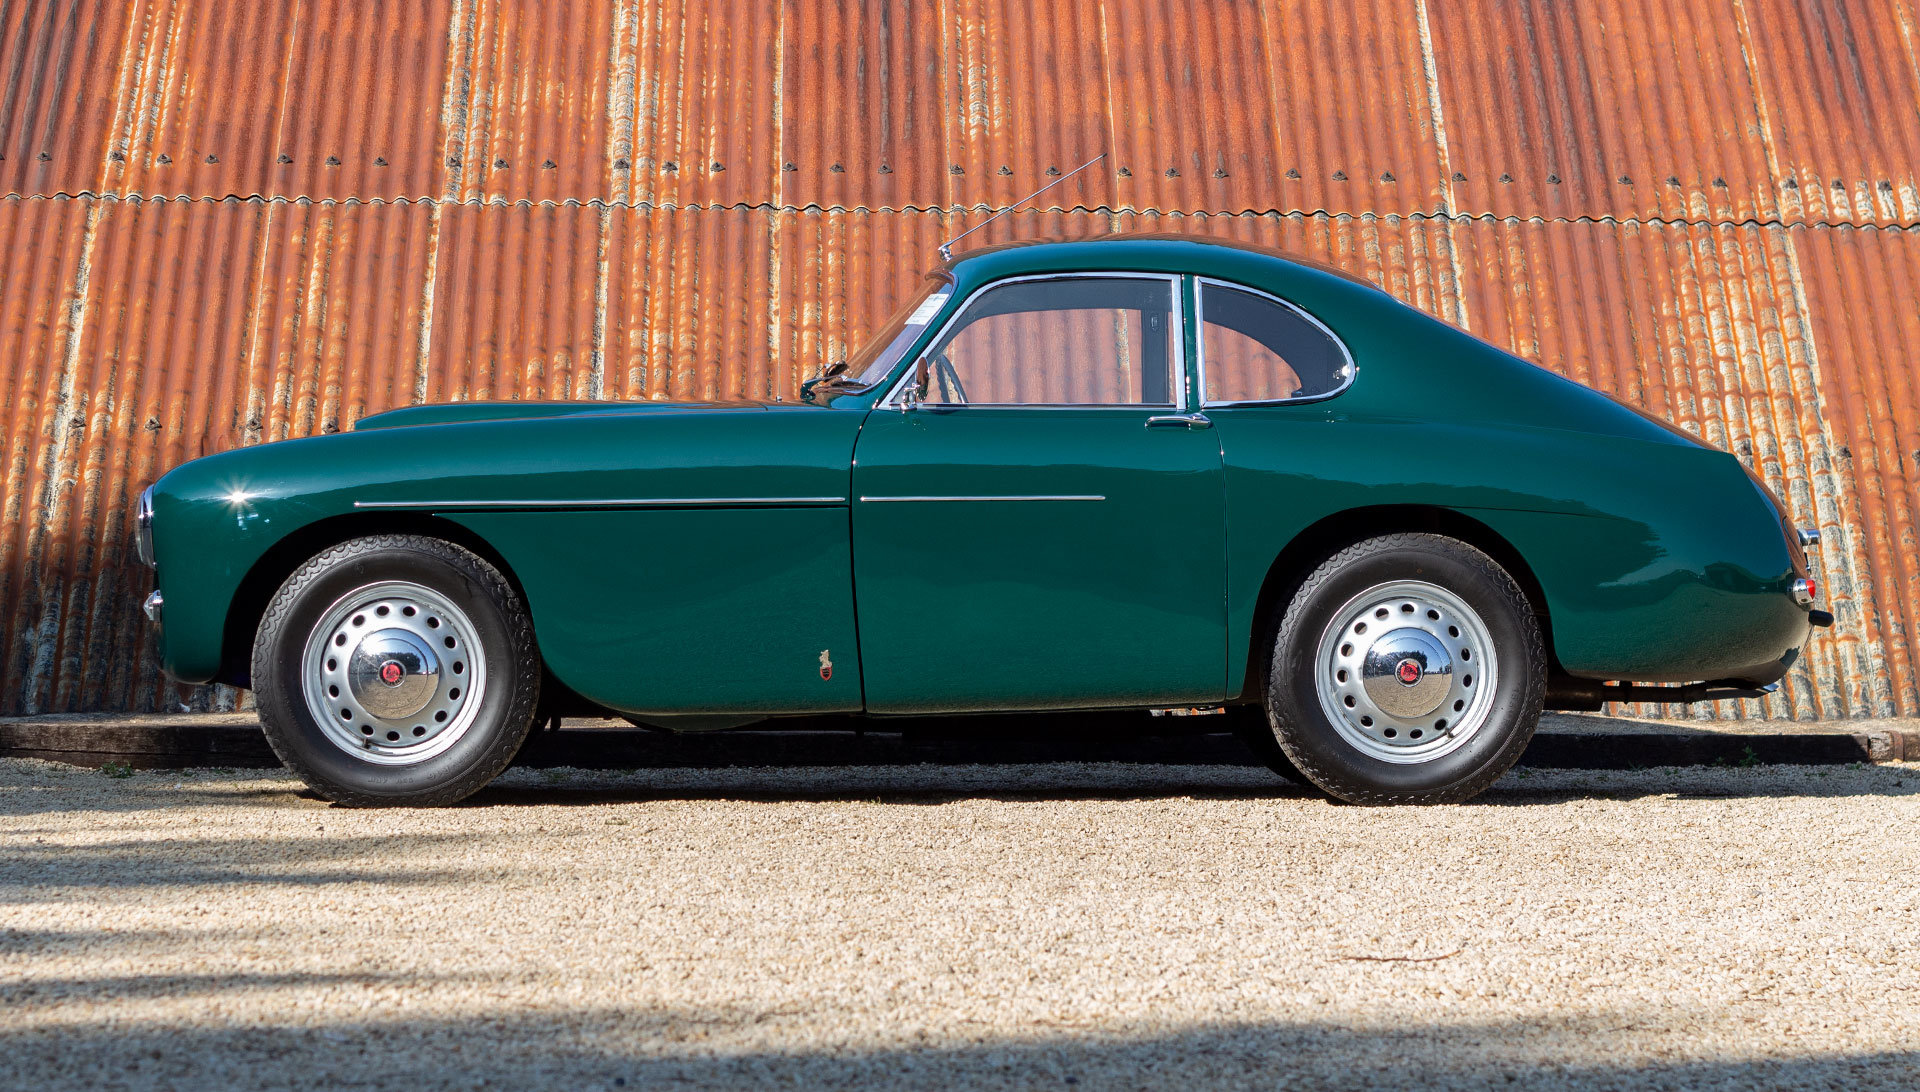 1955 Bristol 404 Coupé - £40k mechanical rebuild in 2019 For Sale (picture 2 of 19)